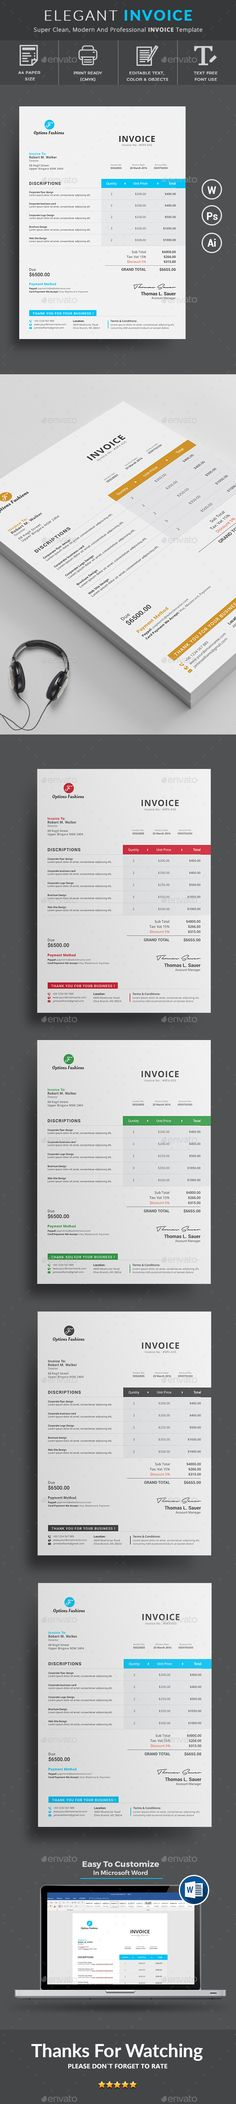 Invoice Invoice design, Brand identity and Business proposal - personal invoice